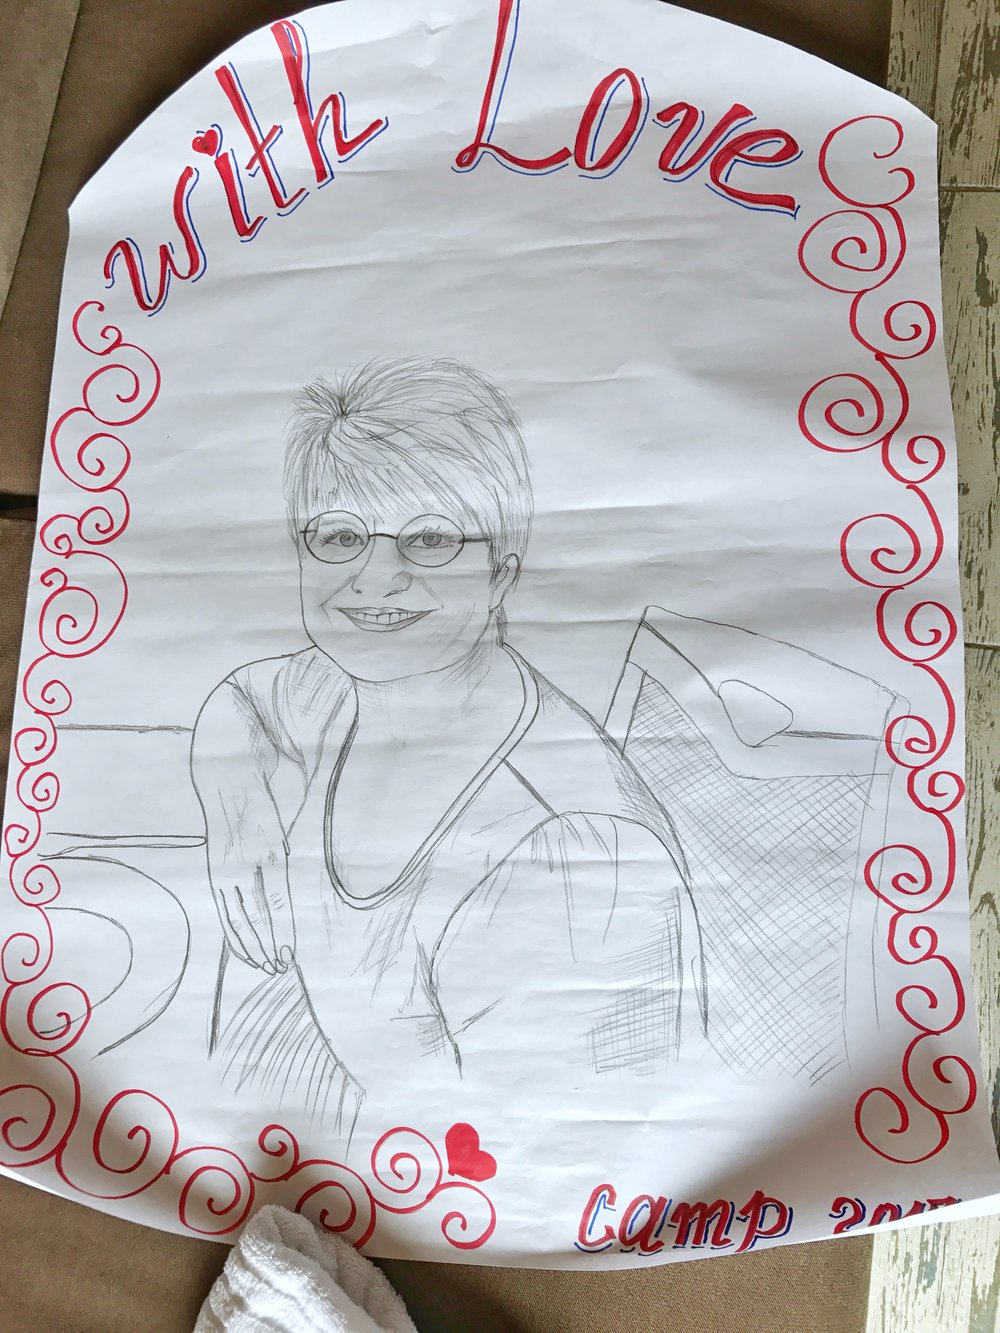 The ladies presented us with gifts.....and one talented young lady even drew our portraits on a large poster. Wow!